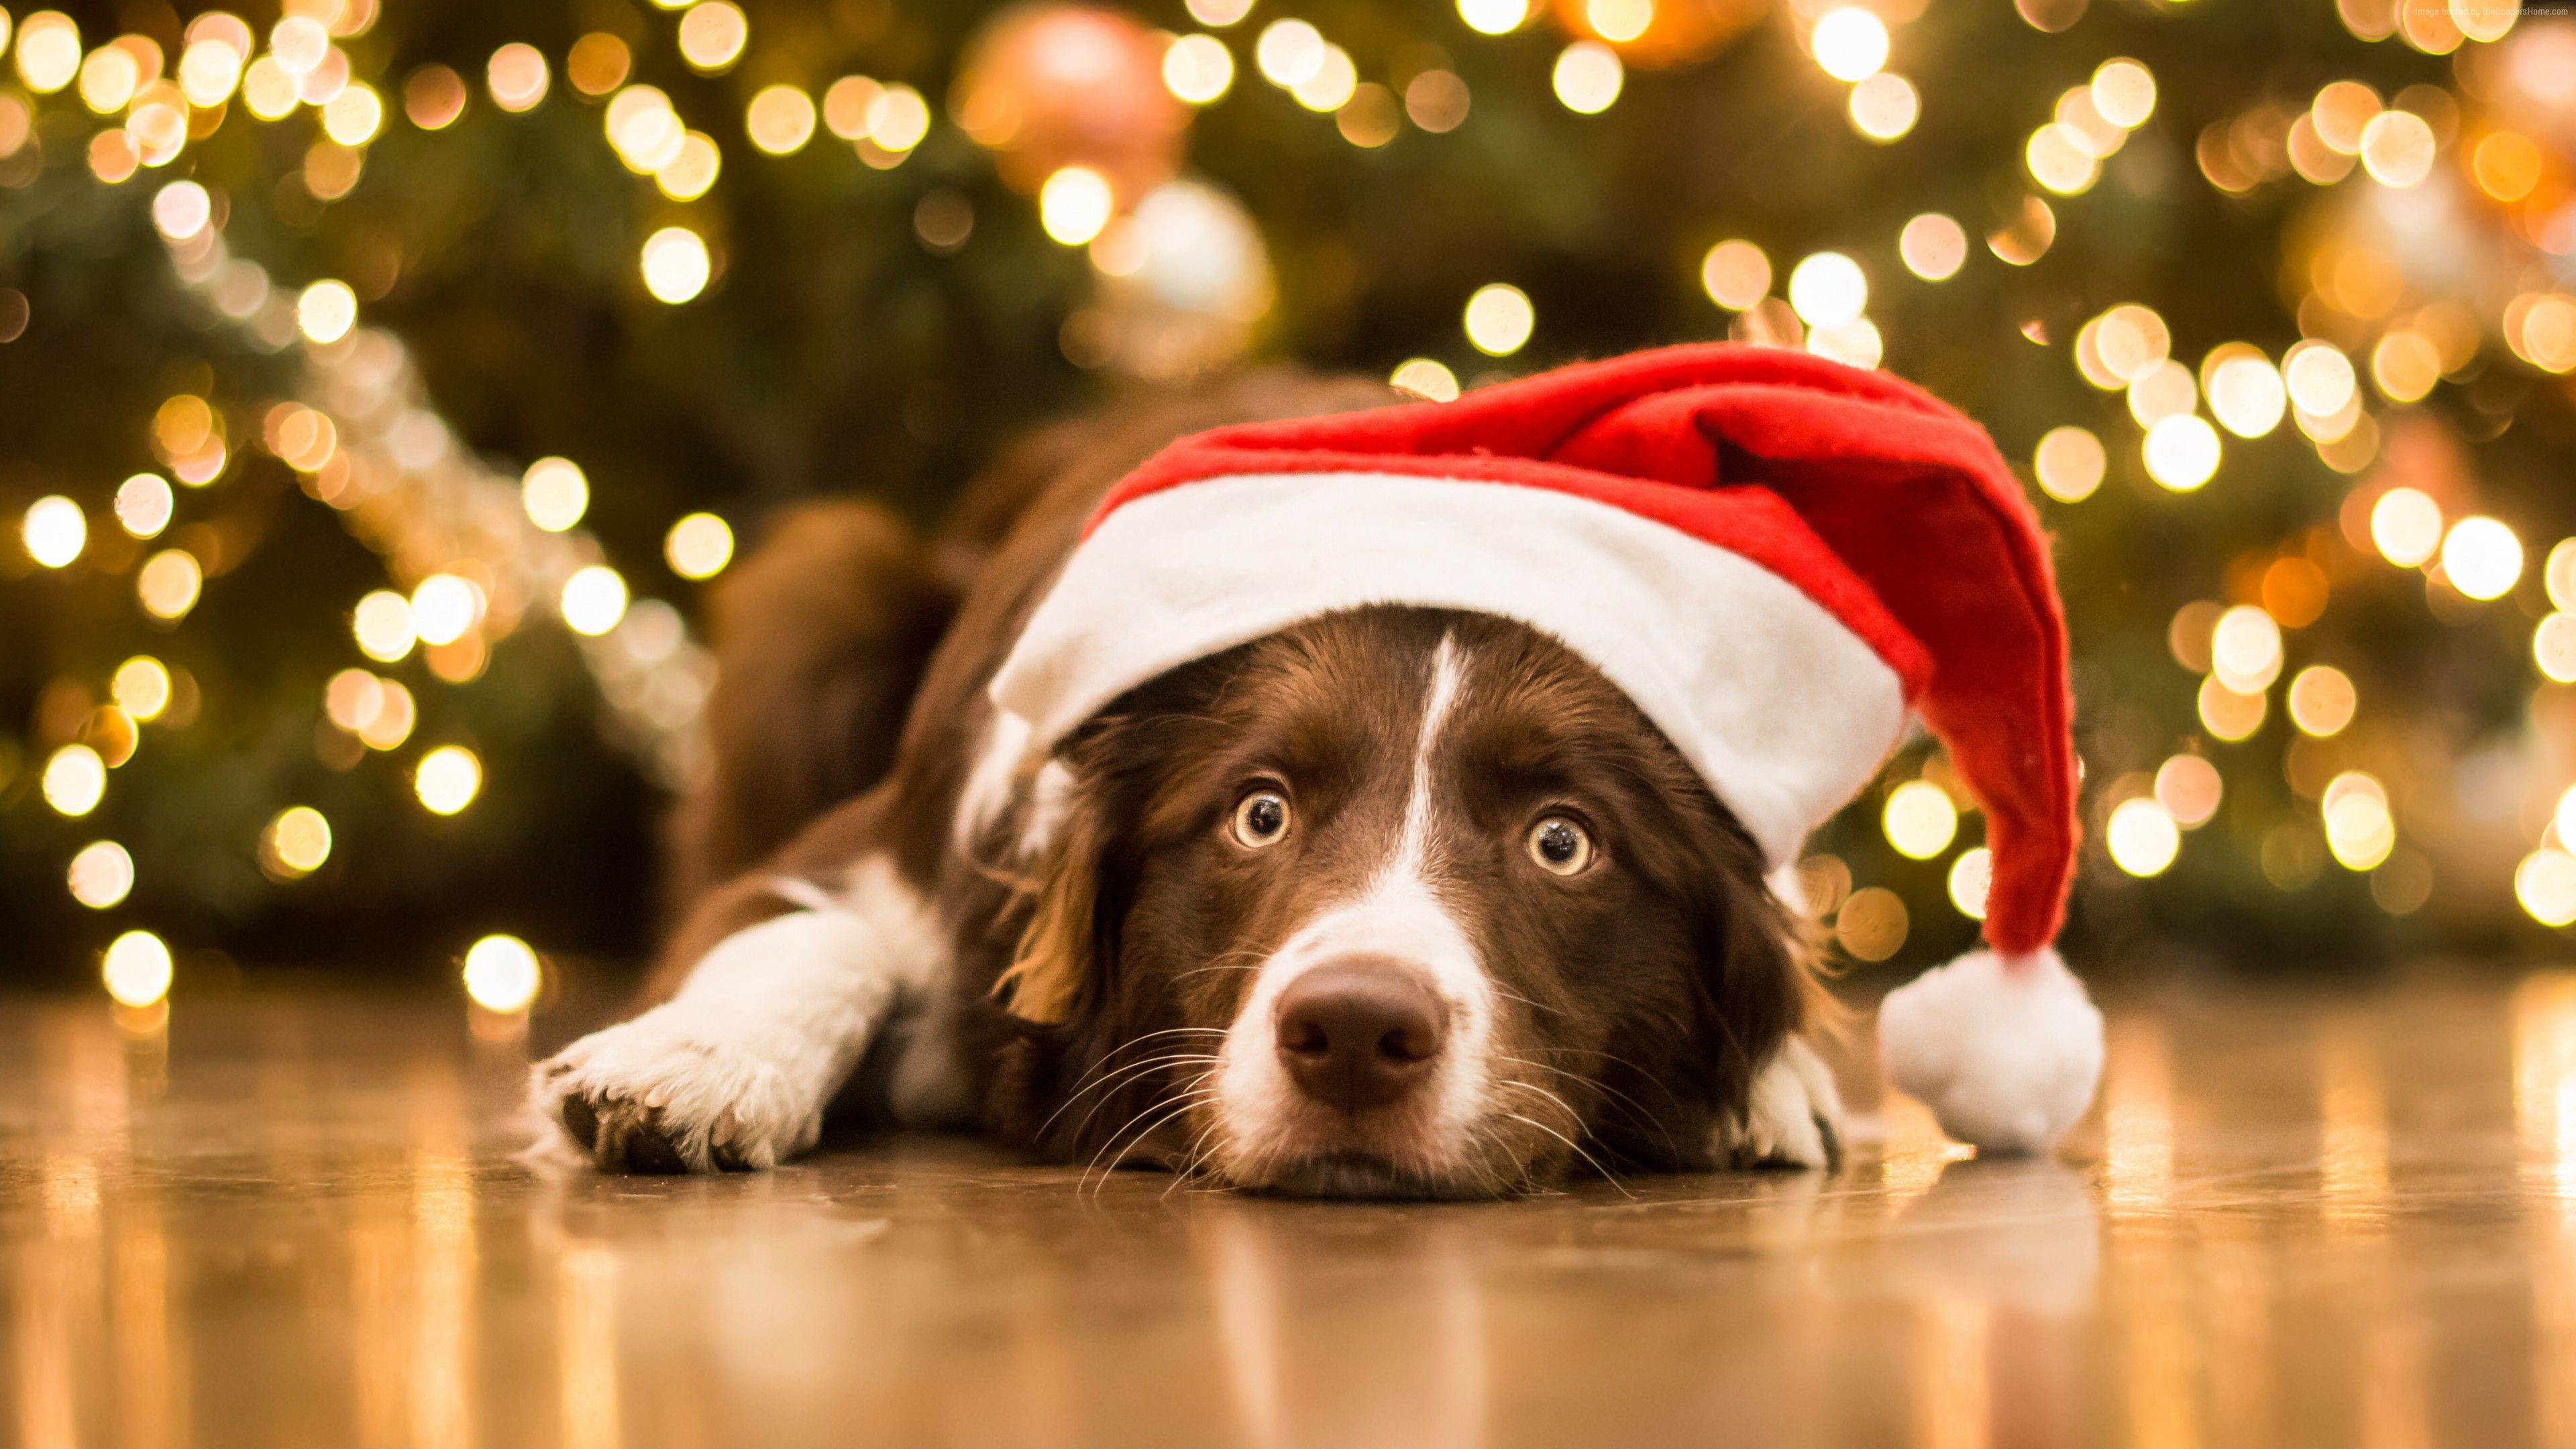 Wallpaper Christmas New Year Dog Cute Animals 5k Holidays Wallpaper Download Christmas Dog Dog Christmas Photos Cute Animals